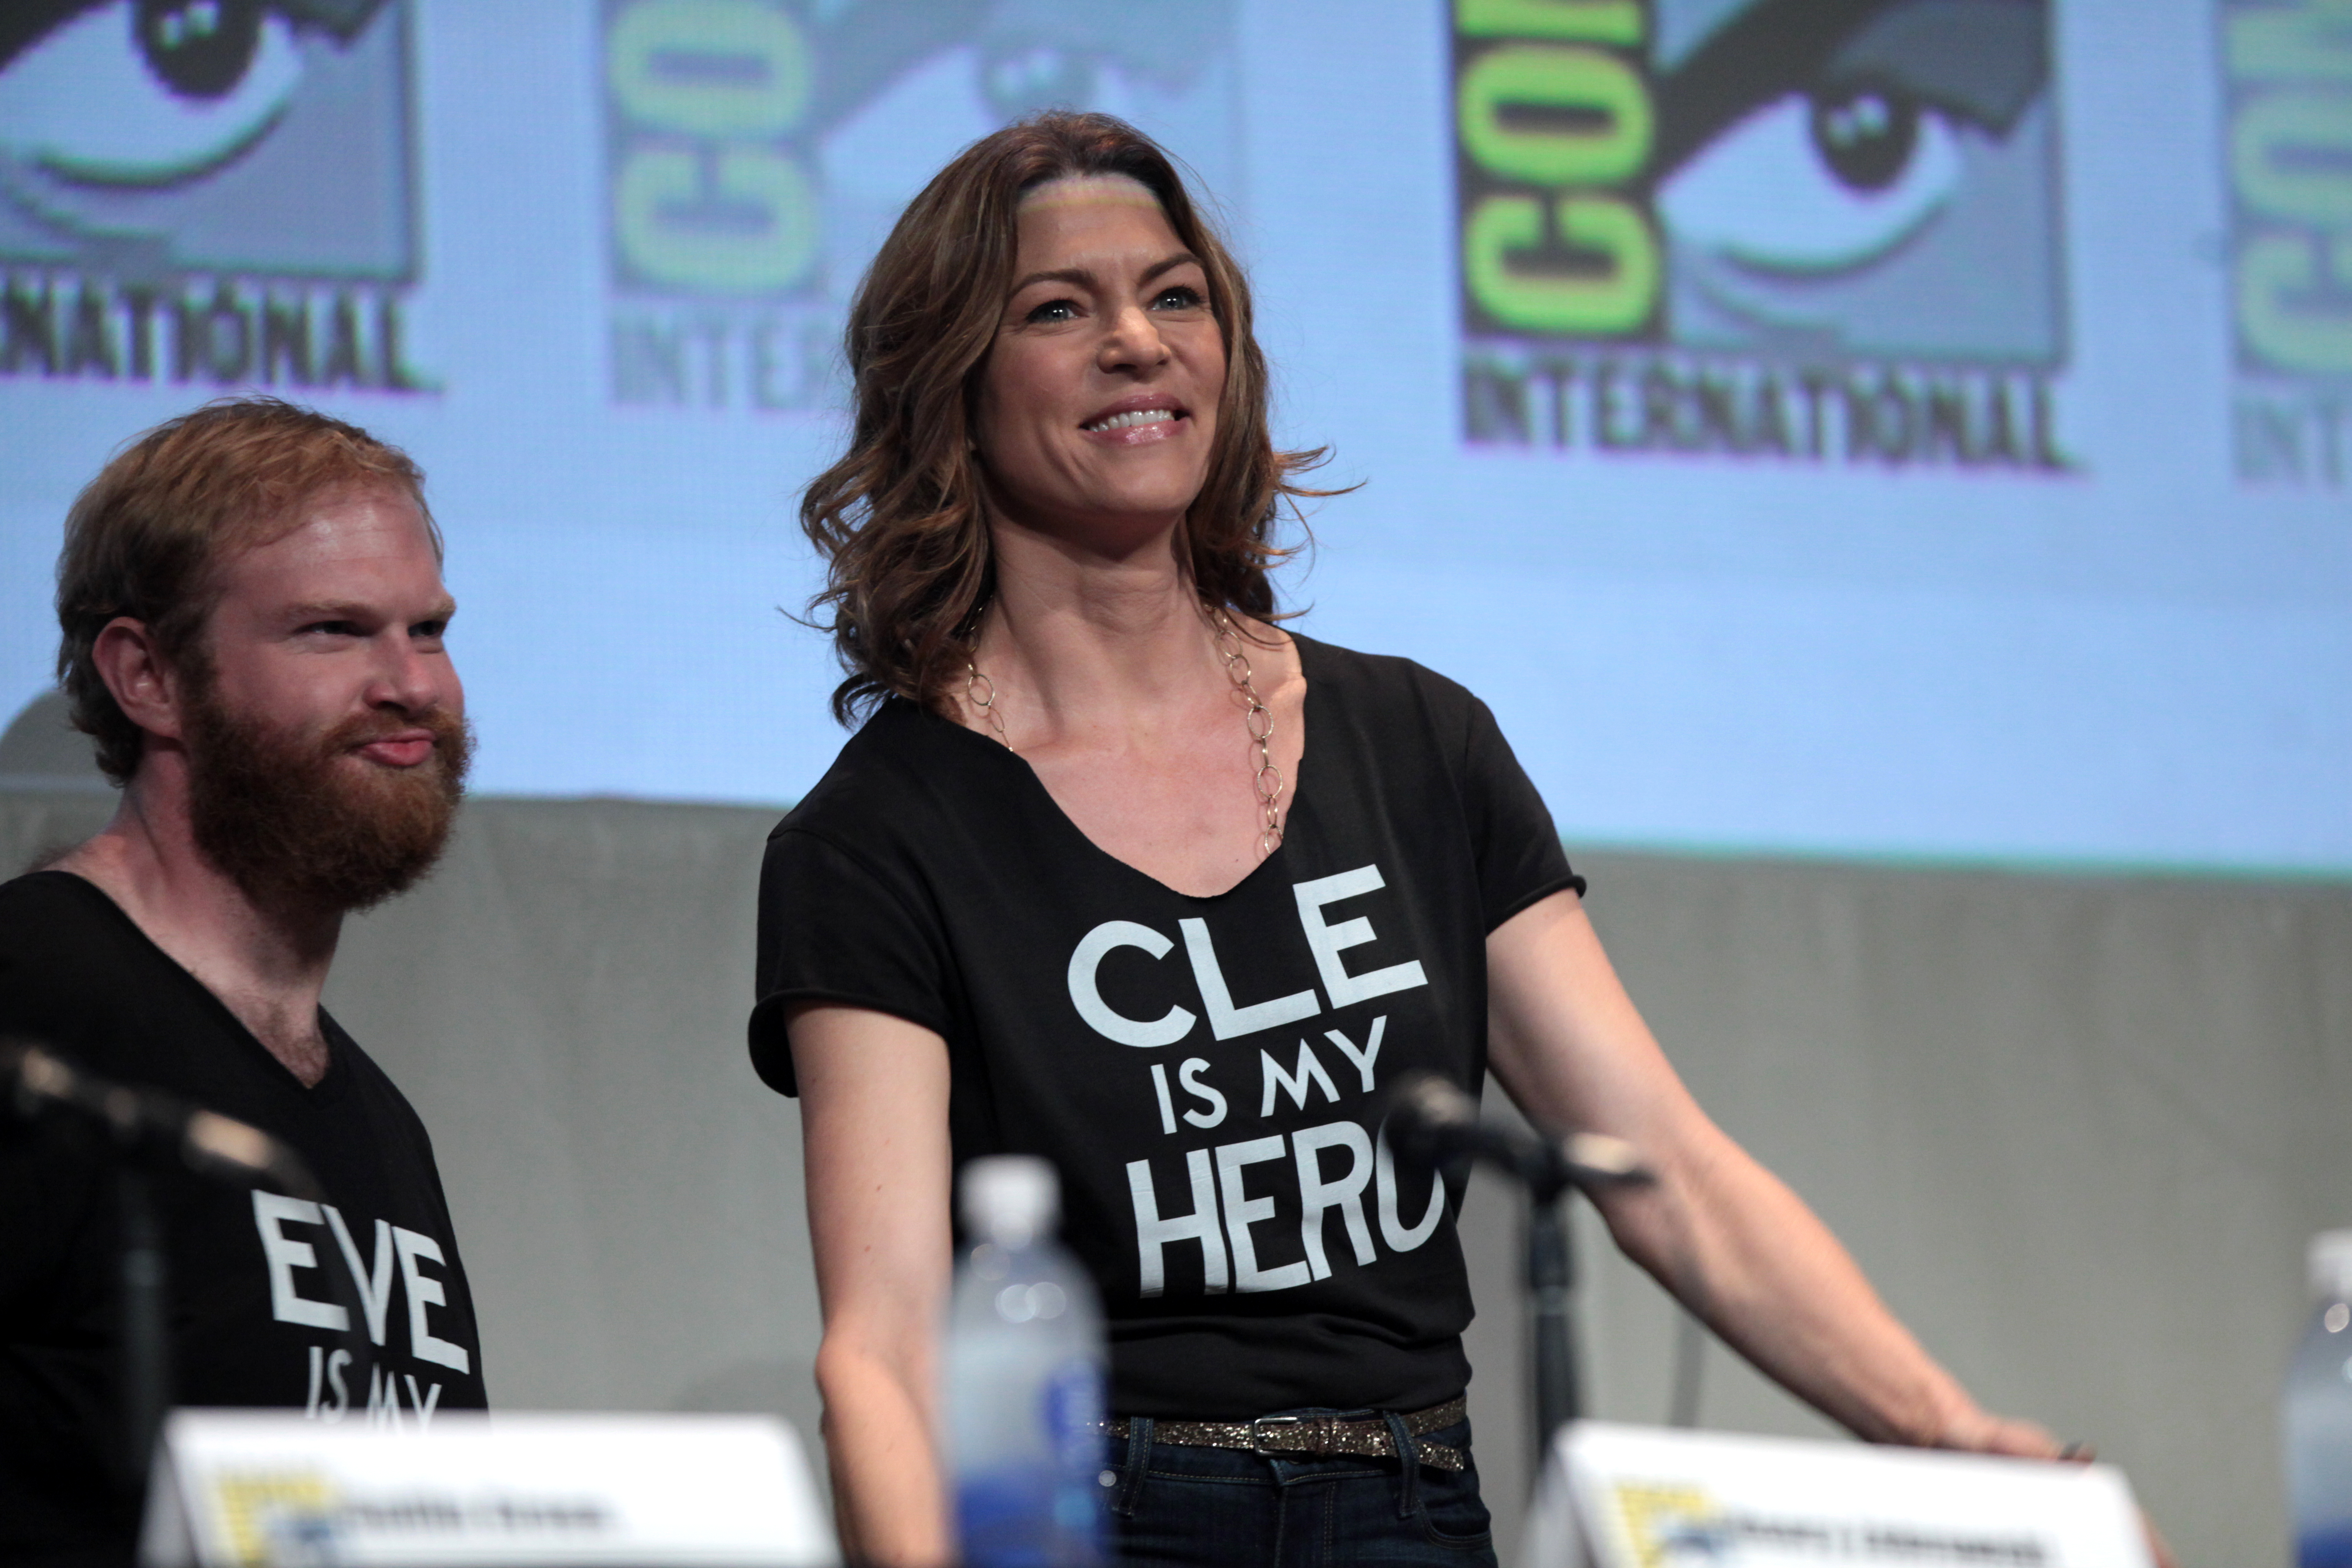 File Sdcc 2015 Henry Zebrowski Rya Kihlstedt 19596298540 Jpg Wikimedia Commons But, she is famous for her role as alice robbins in the comedy 'home alone 3'. wikimedia commons